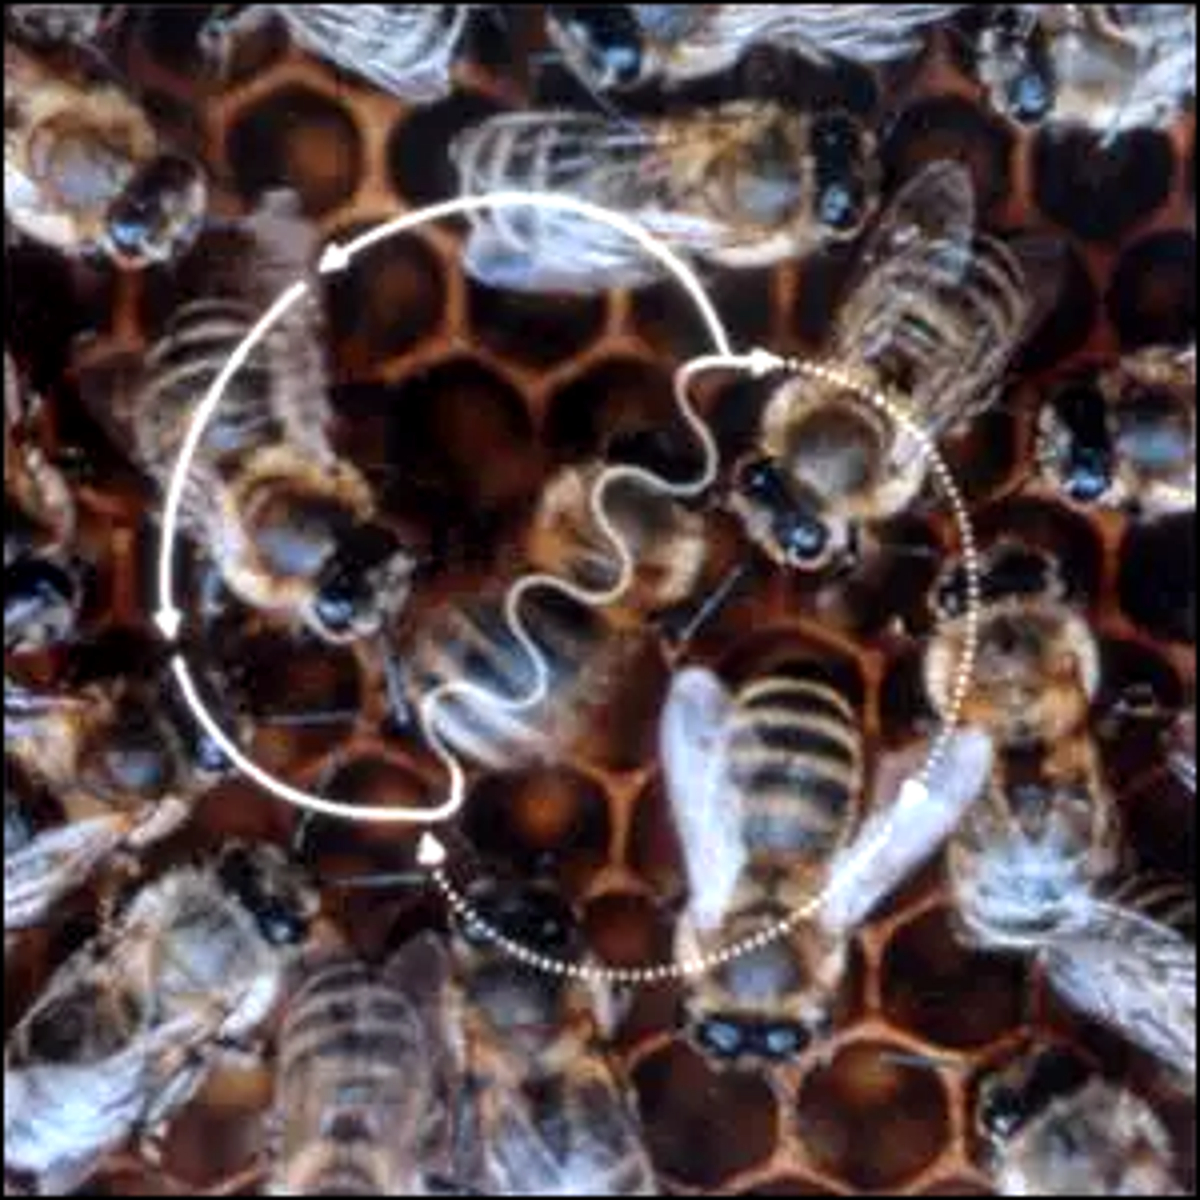 The figure-eight-shaped waggle dance of the honey bee.